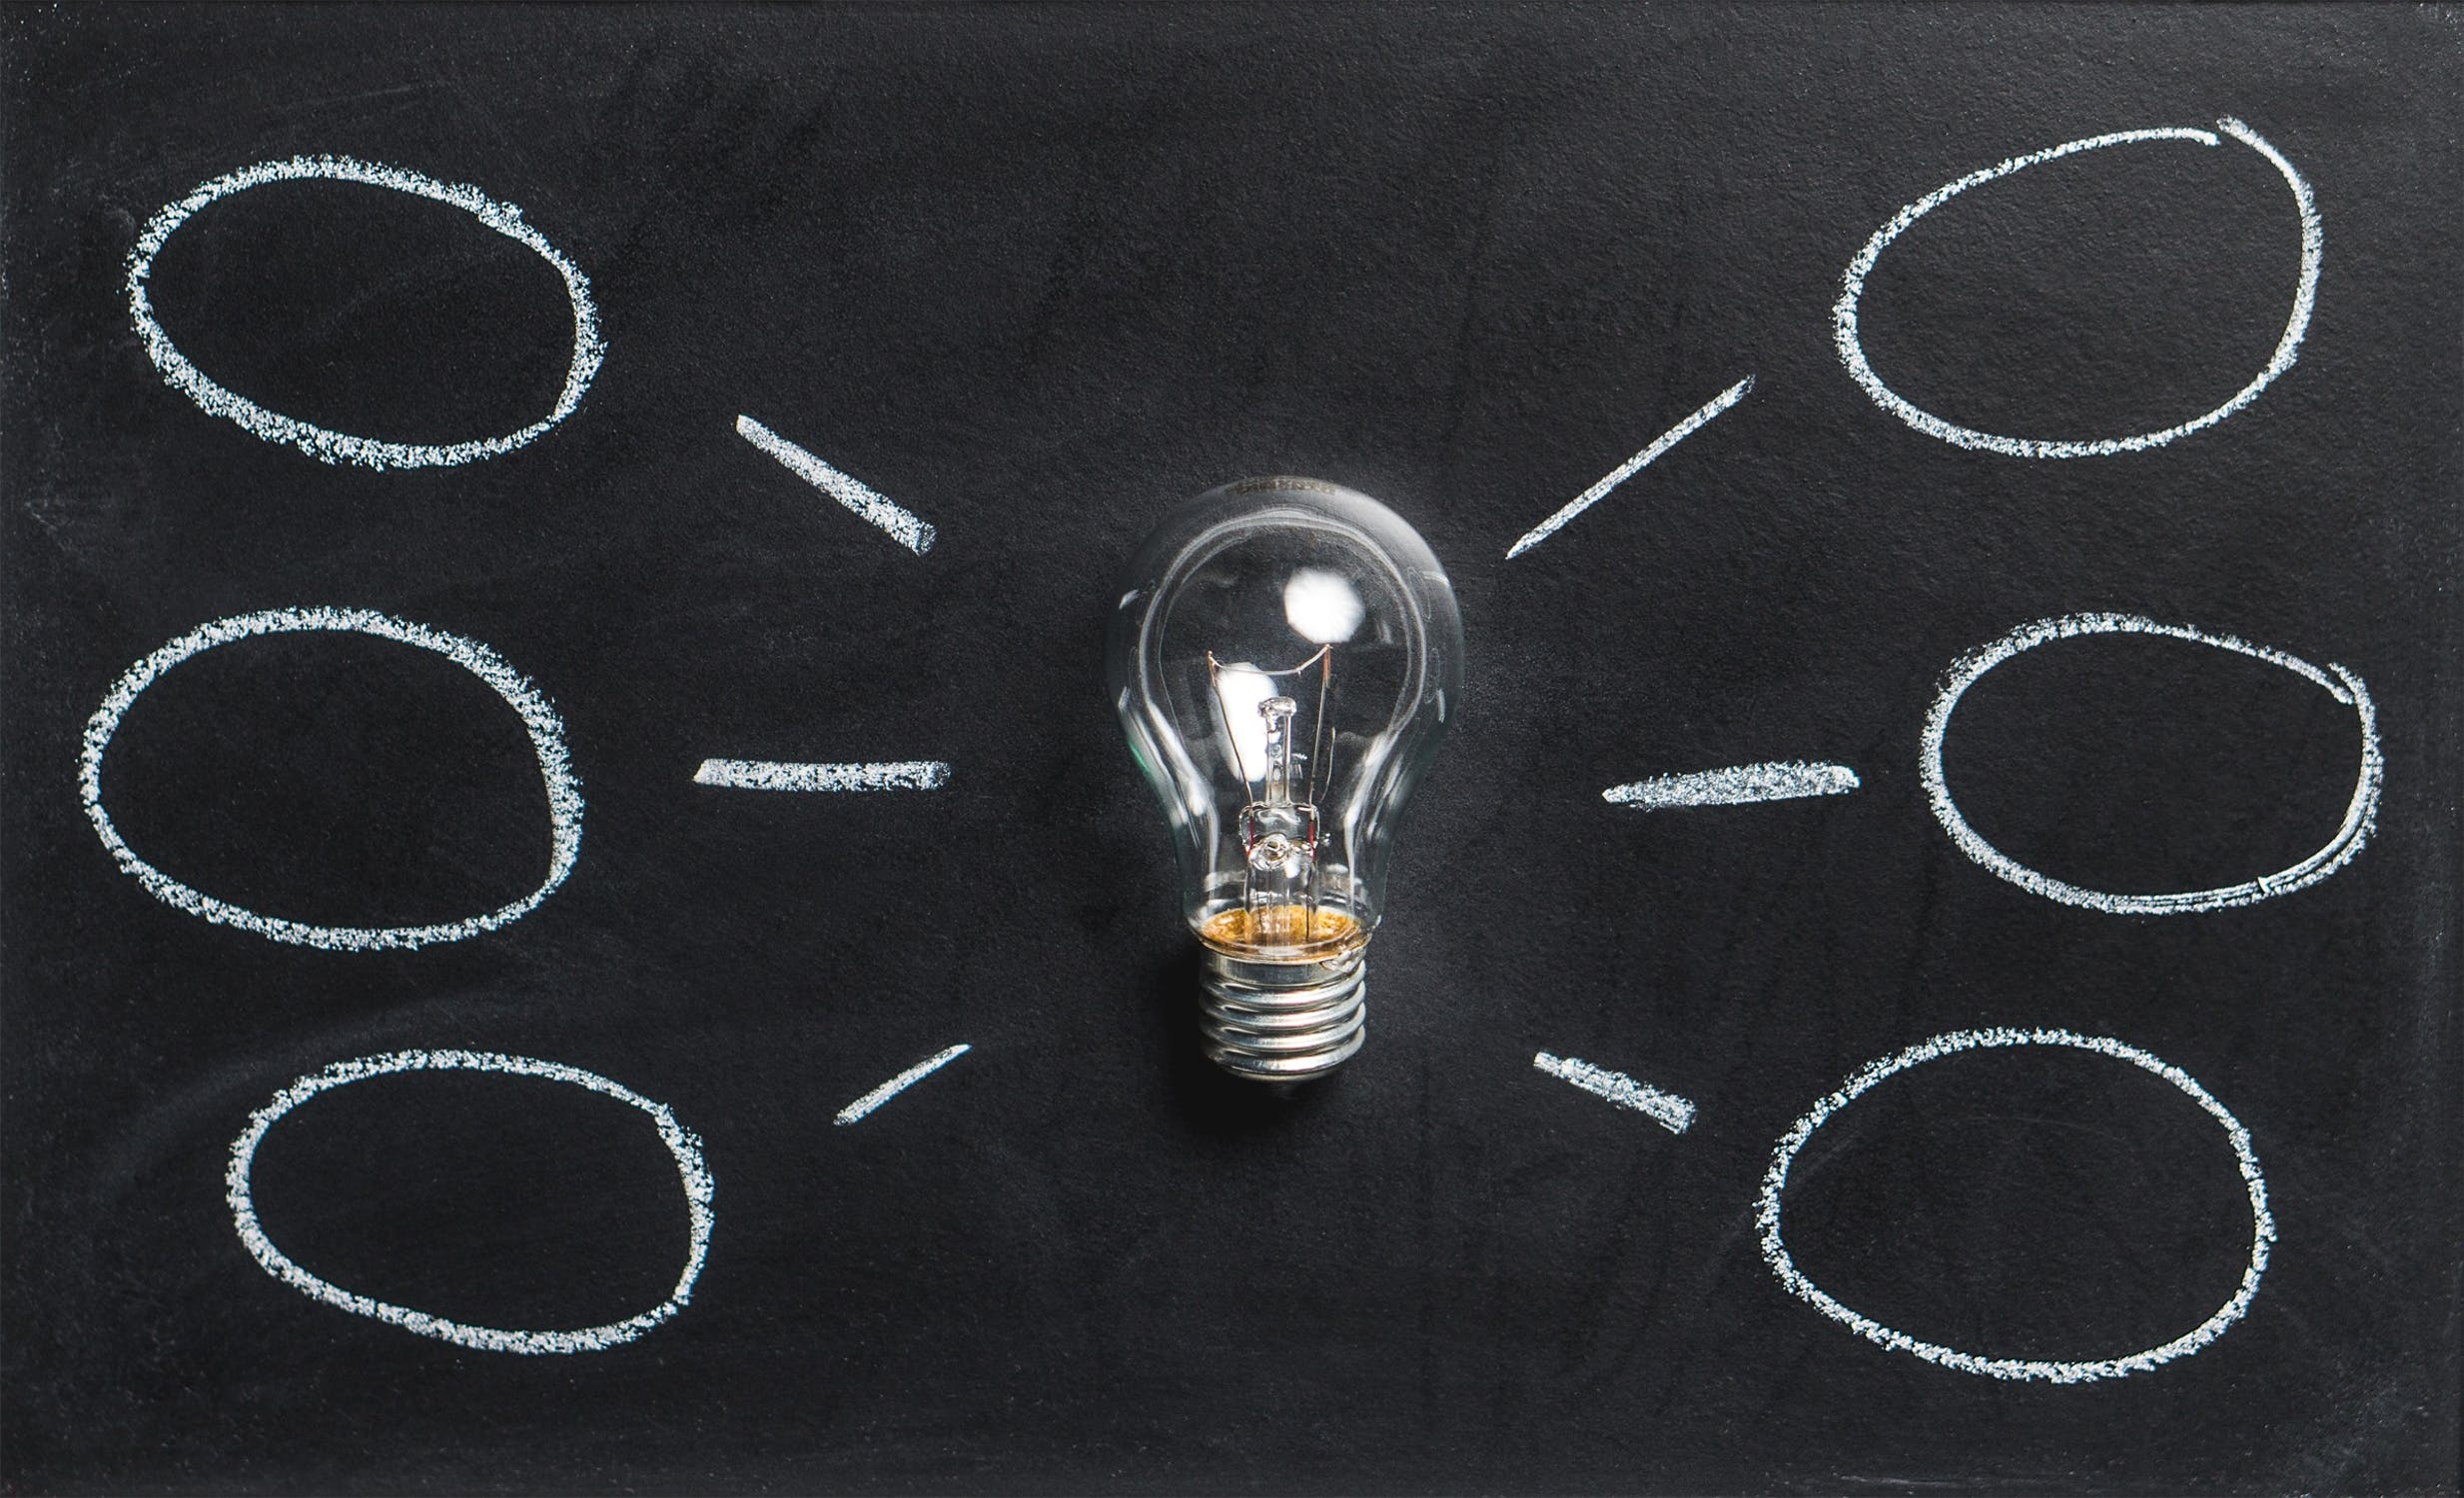 Ascertain your business idea | How to start a small business in Singapore